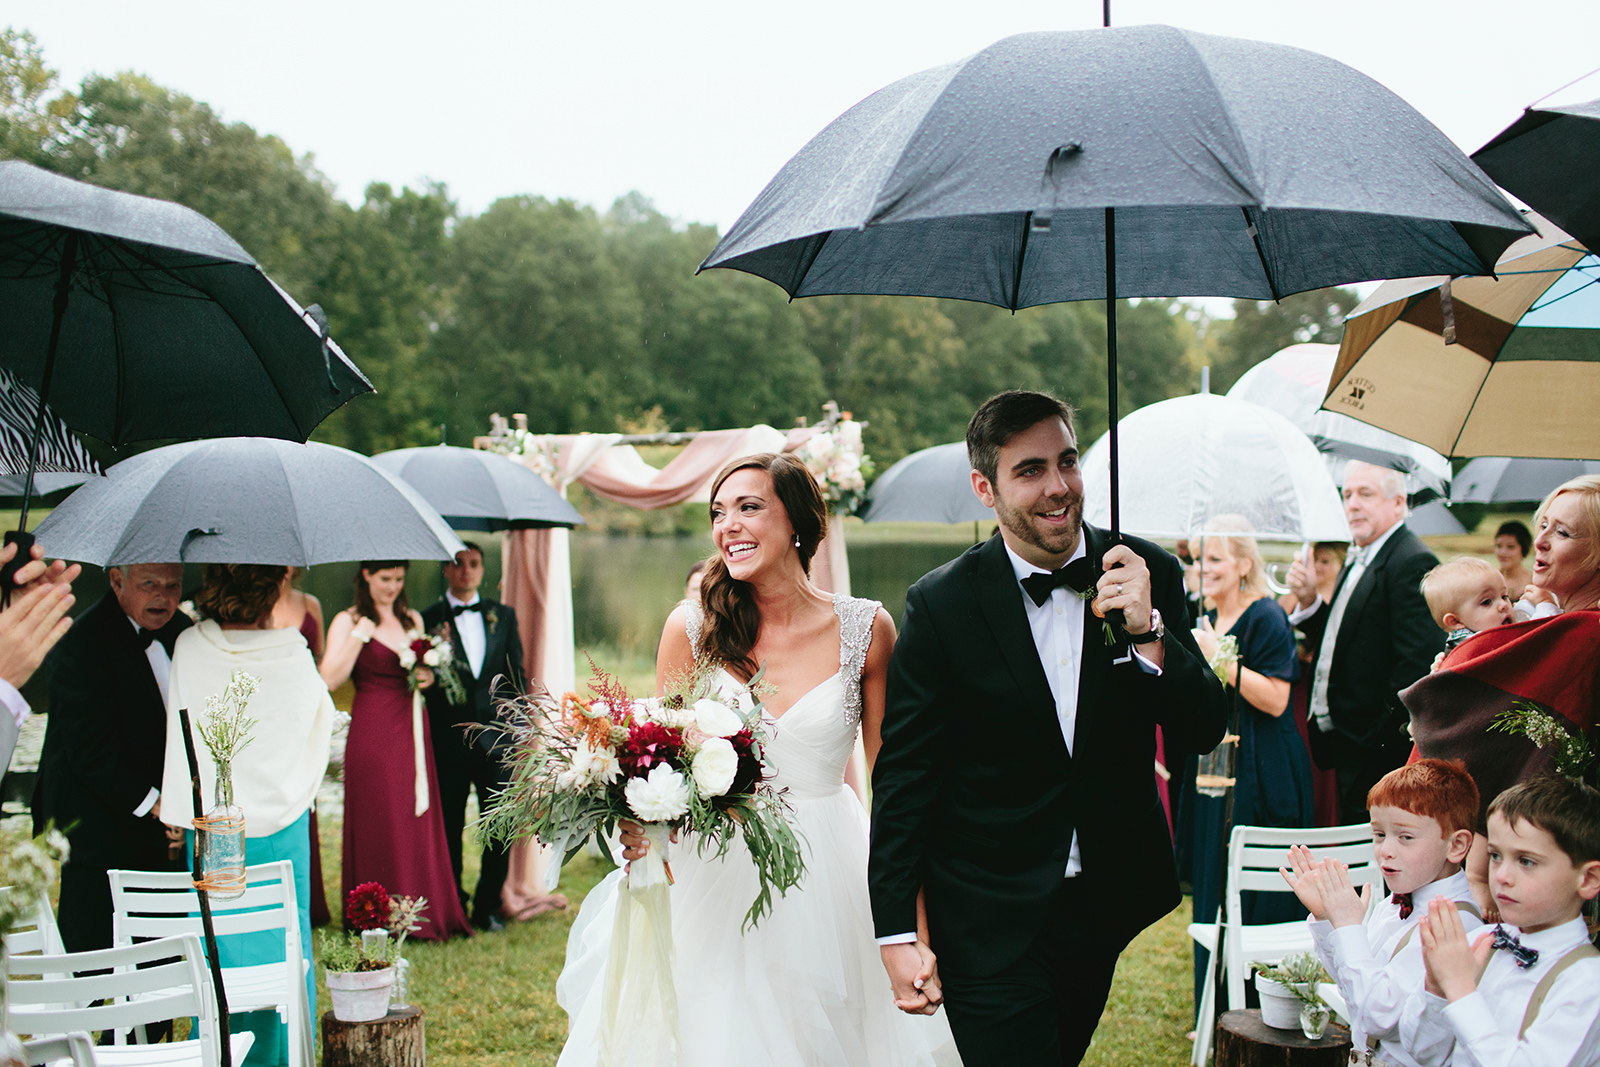 rainy-wedding-photos-10